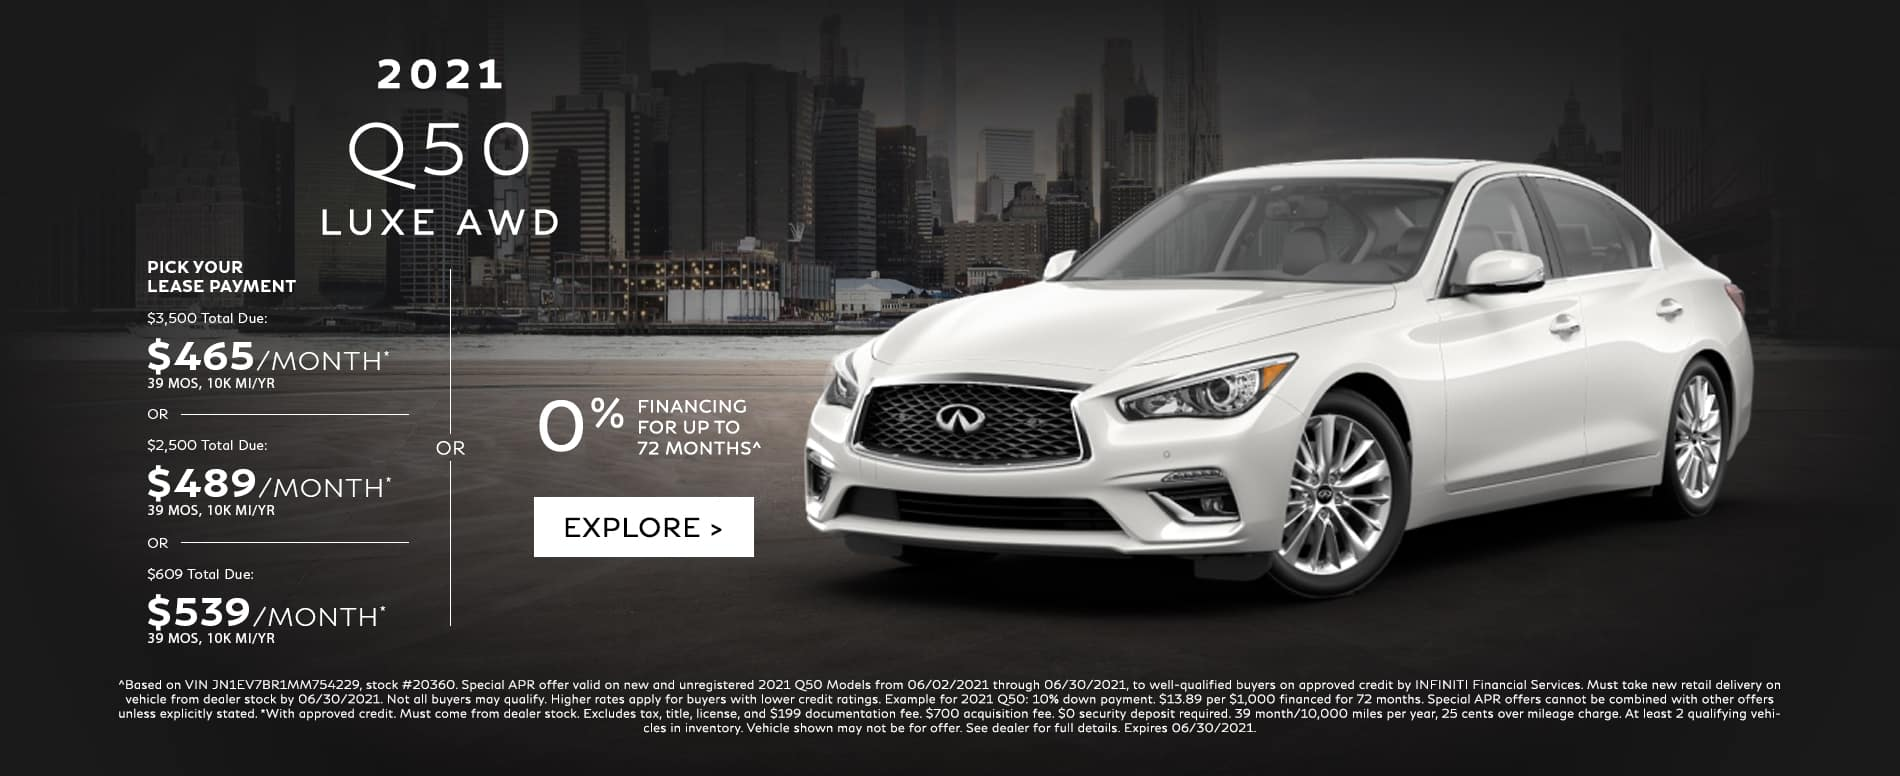 Lease from $465 per month. See dealer for details.